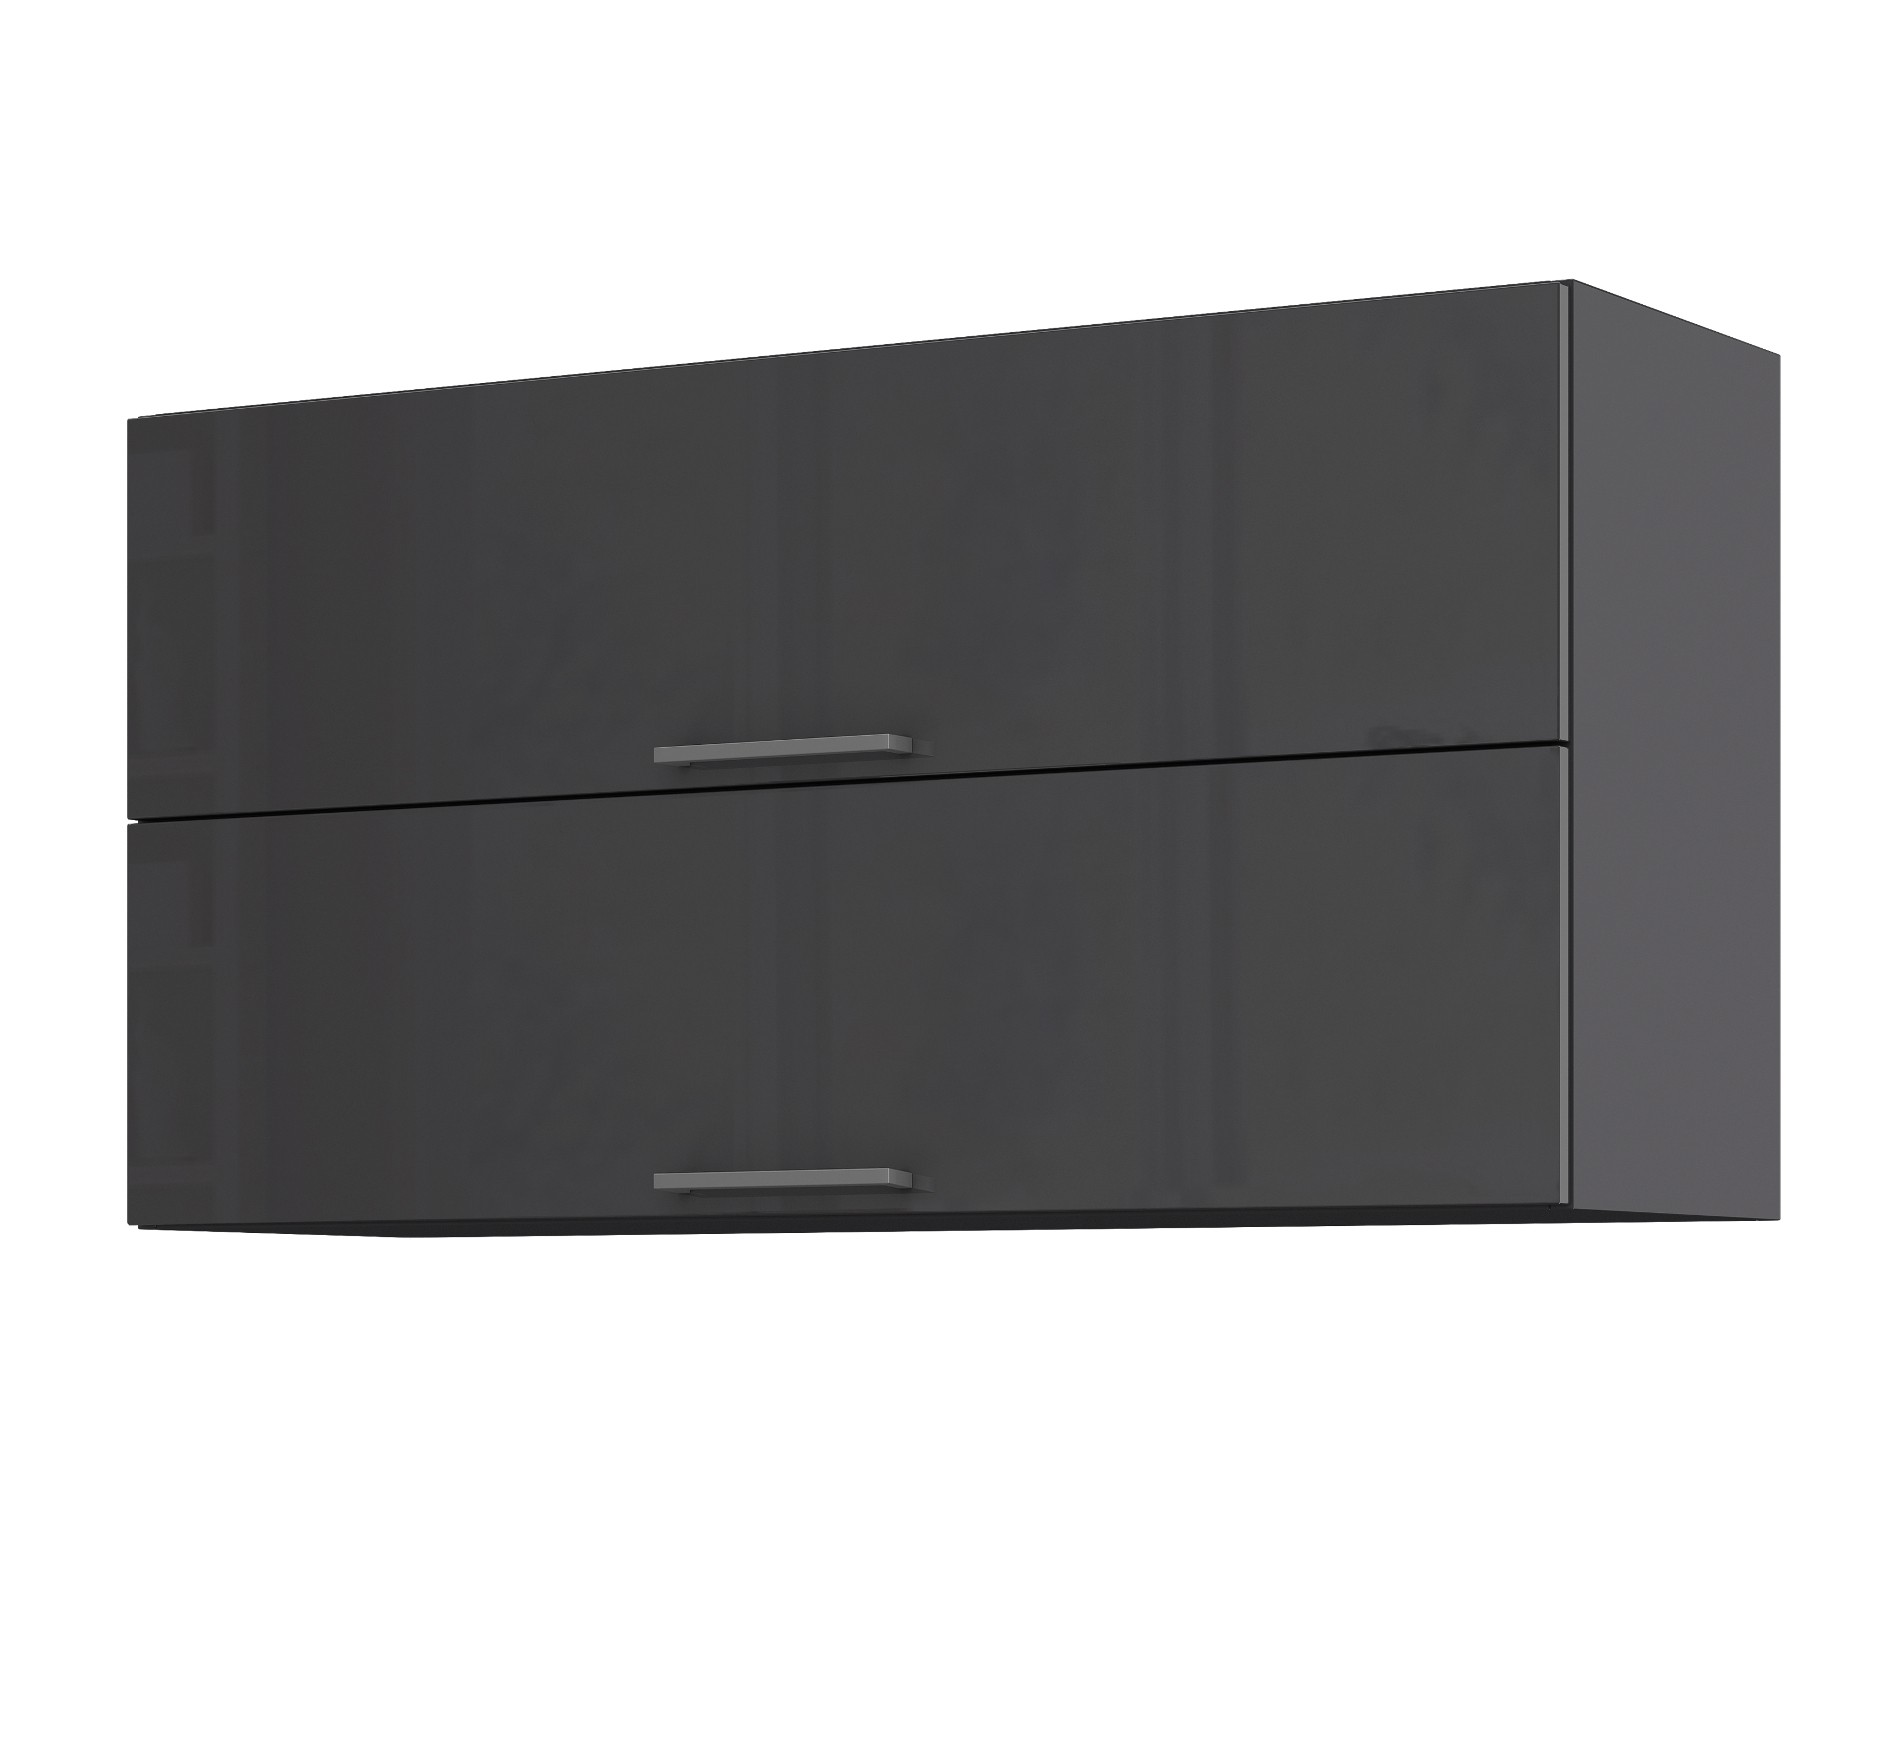 k chen h ngeschrank m nchen 2 klappen 100 cm breit hochglanz grau k che k chen h ngeschr nke. Black Bedroom Furniture Sets. Home Design Ideas